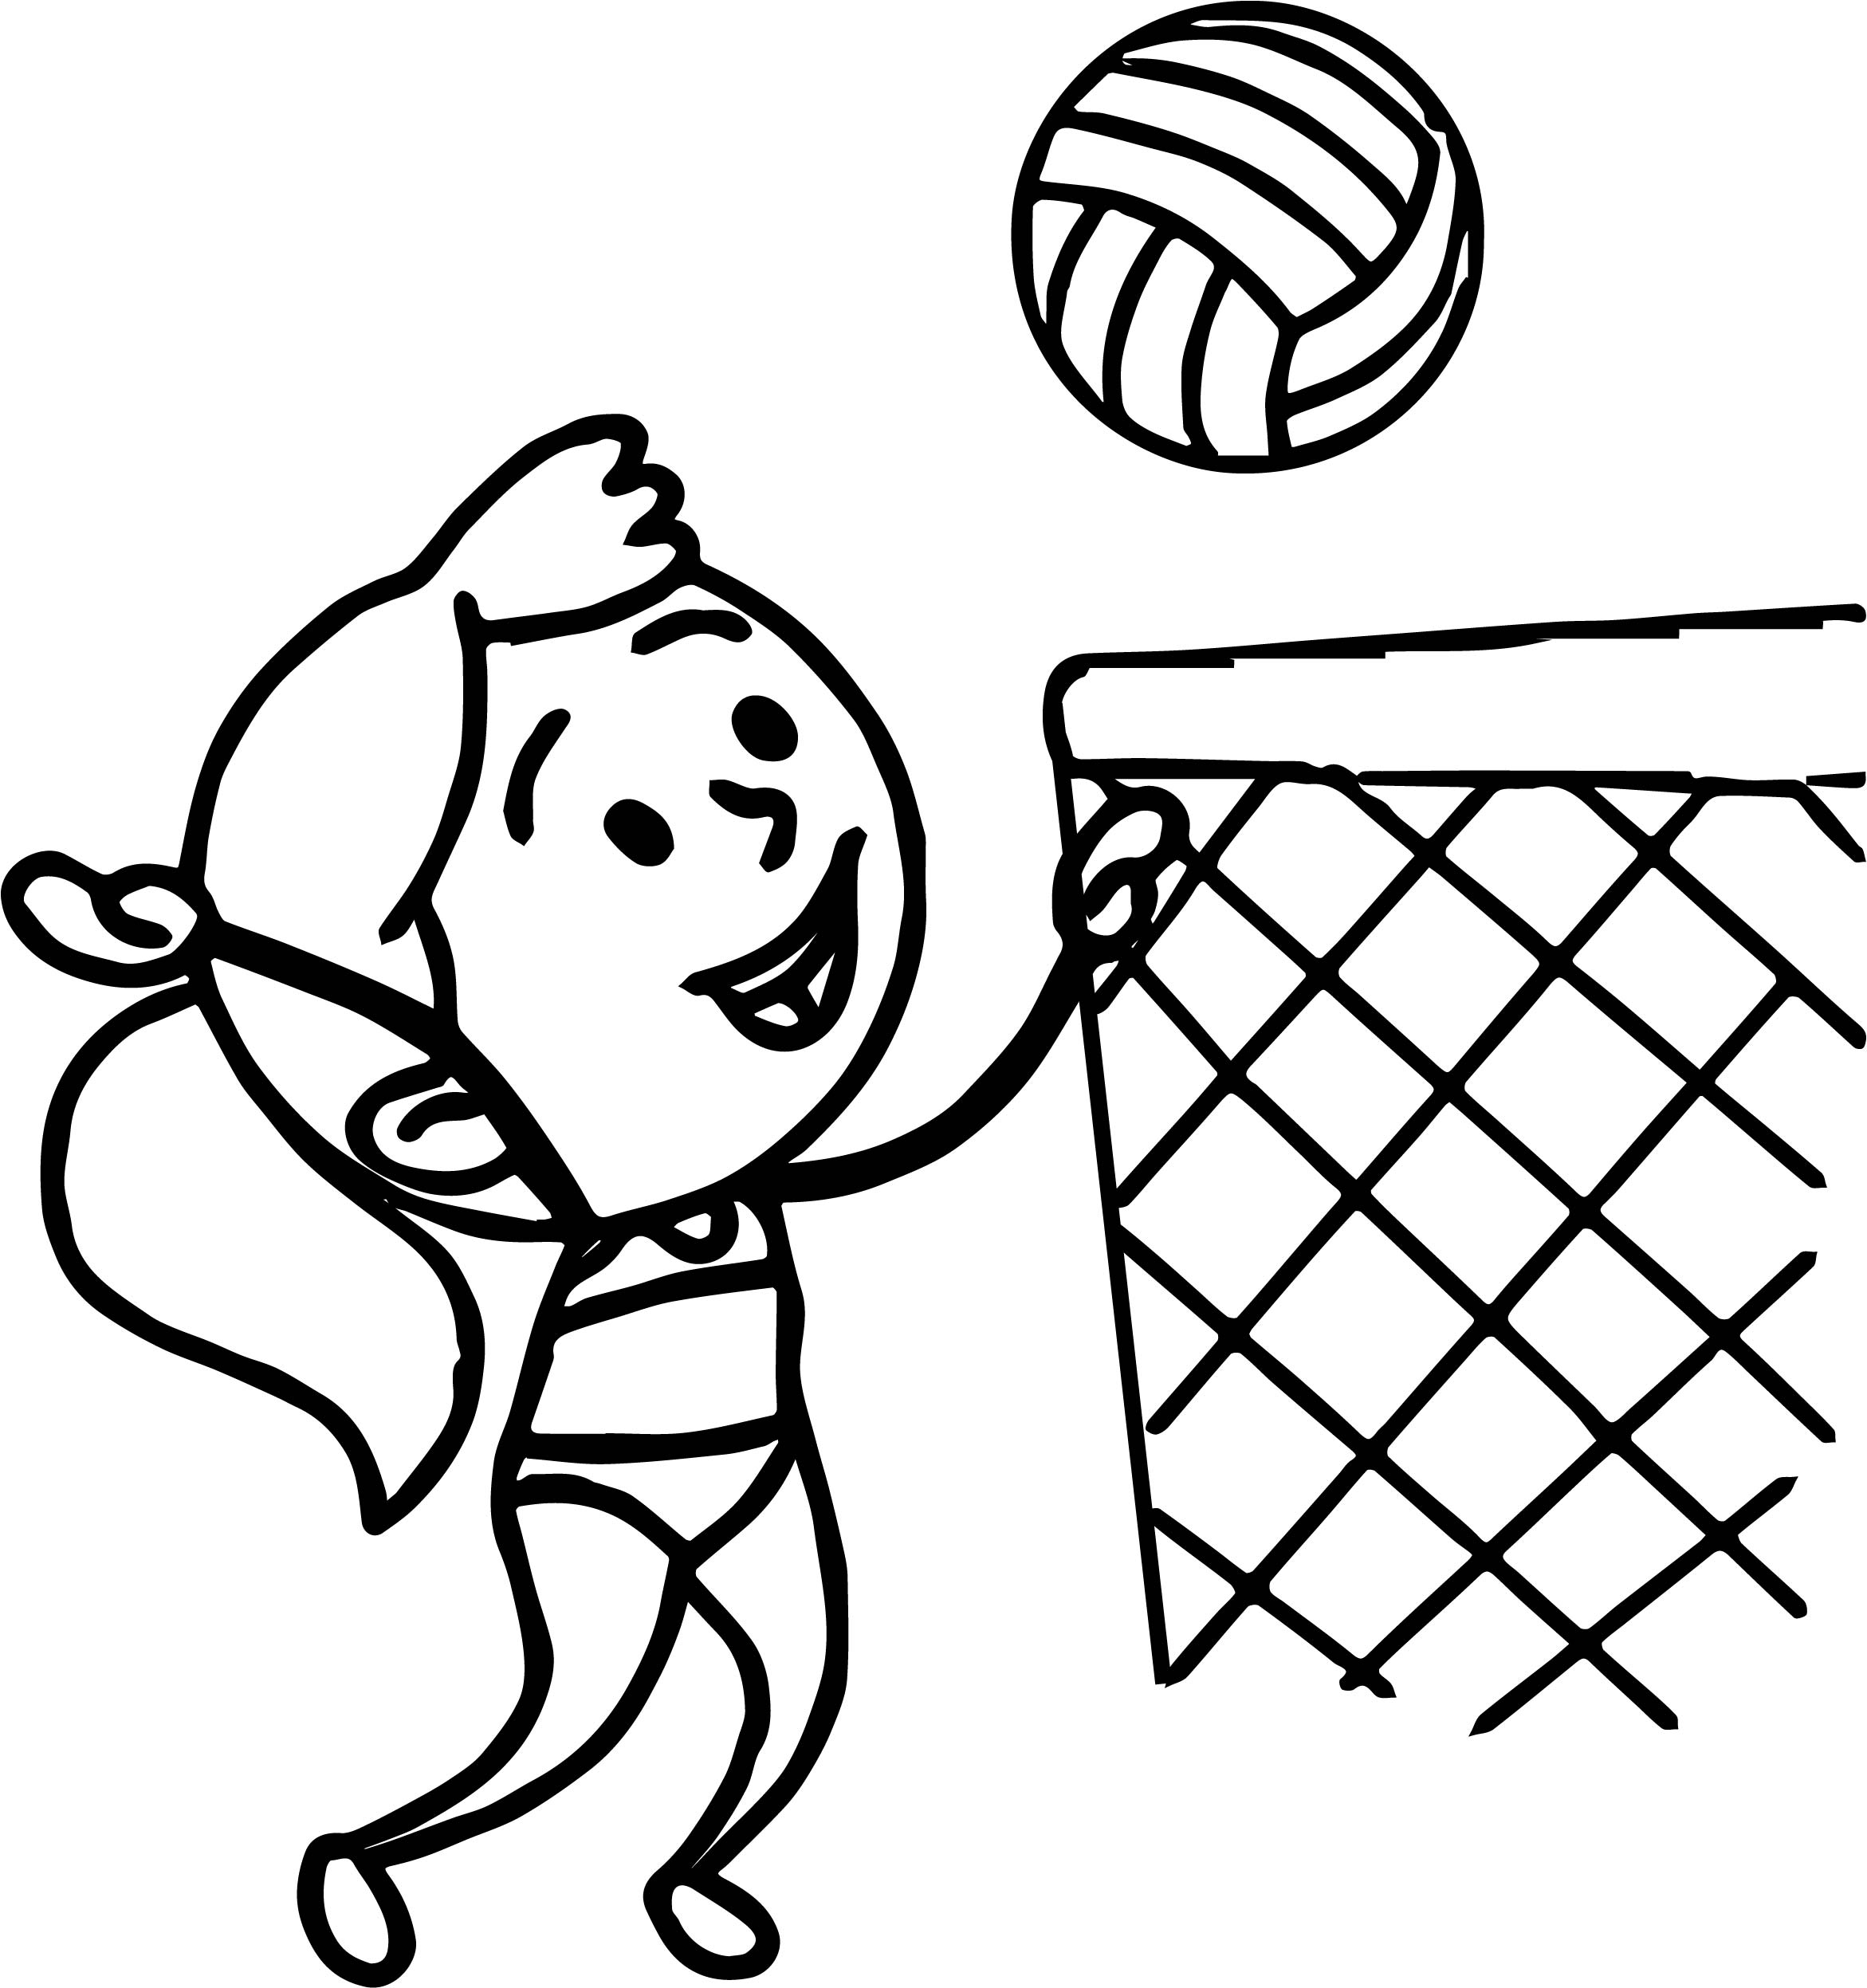 2342x2494 Cartoon Chubby Female Volleyball Player Jumping To Ball Sports